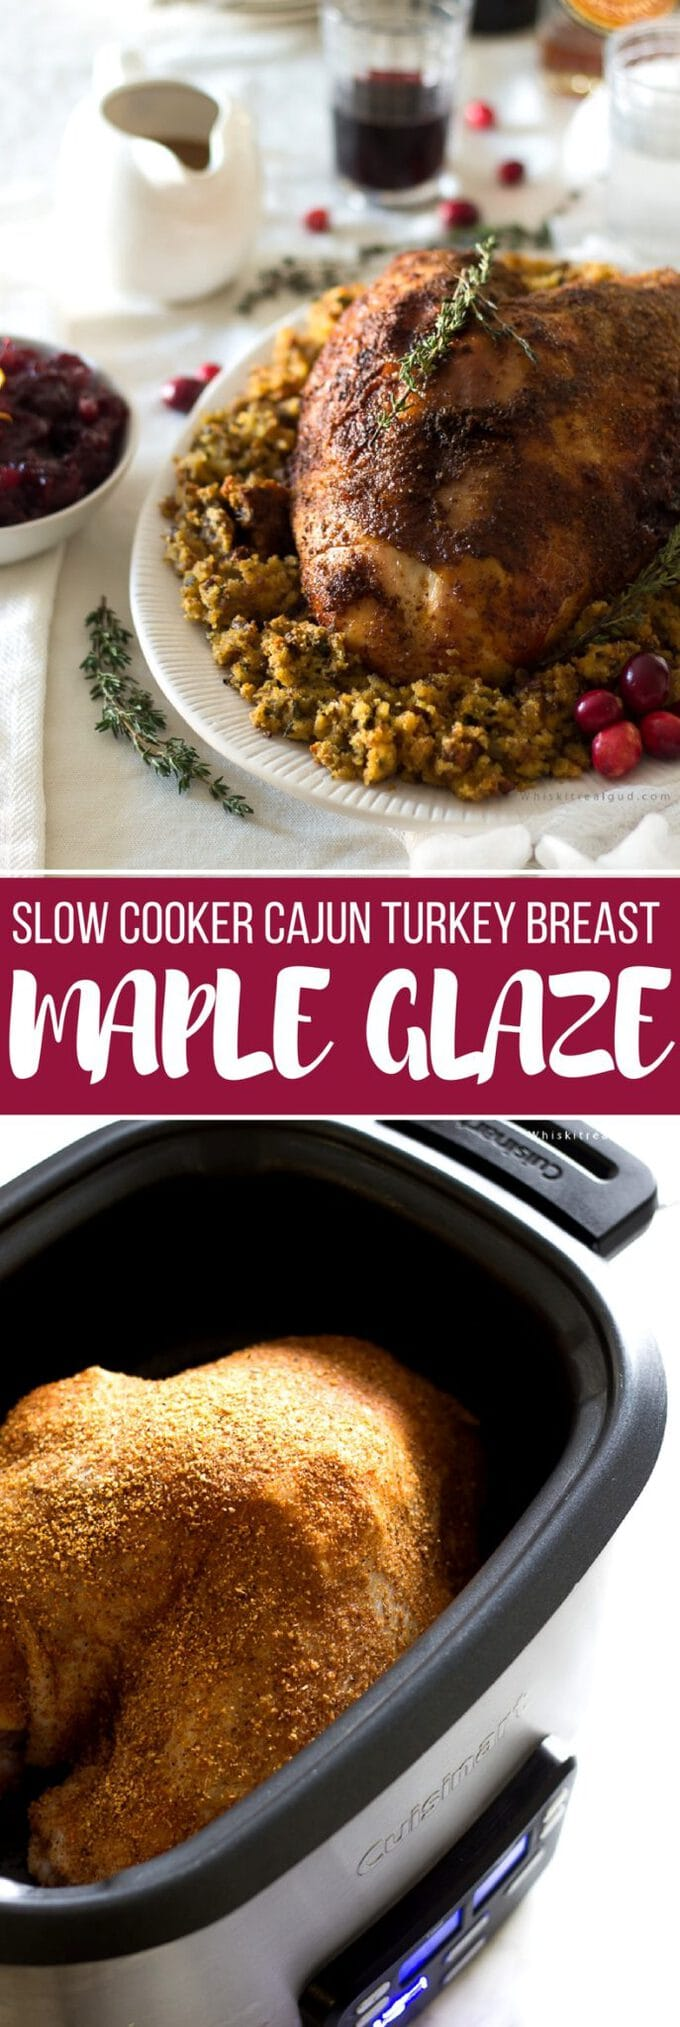 Slow cooker/ crockpot turkey breast is amazingly succulent. This Cajun seasoning maple turkey breast is so simple plus it takes less than 5 minutes to prepare. This Thanksgiving, reserve your oven for your other meals and let your turkey slow cooker to juicy perfection! This recipe can easily be adapted for a whole turkey.